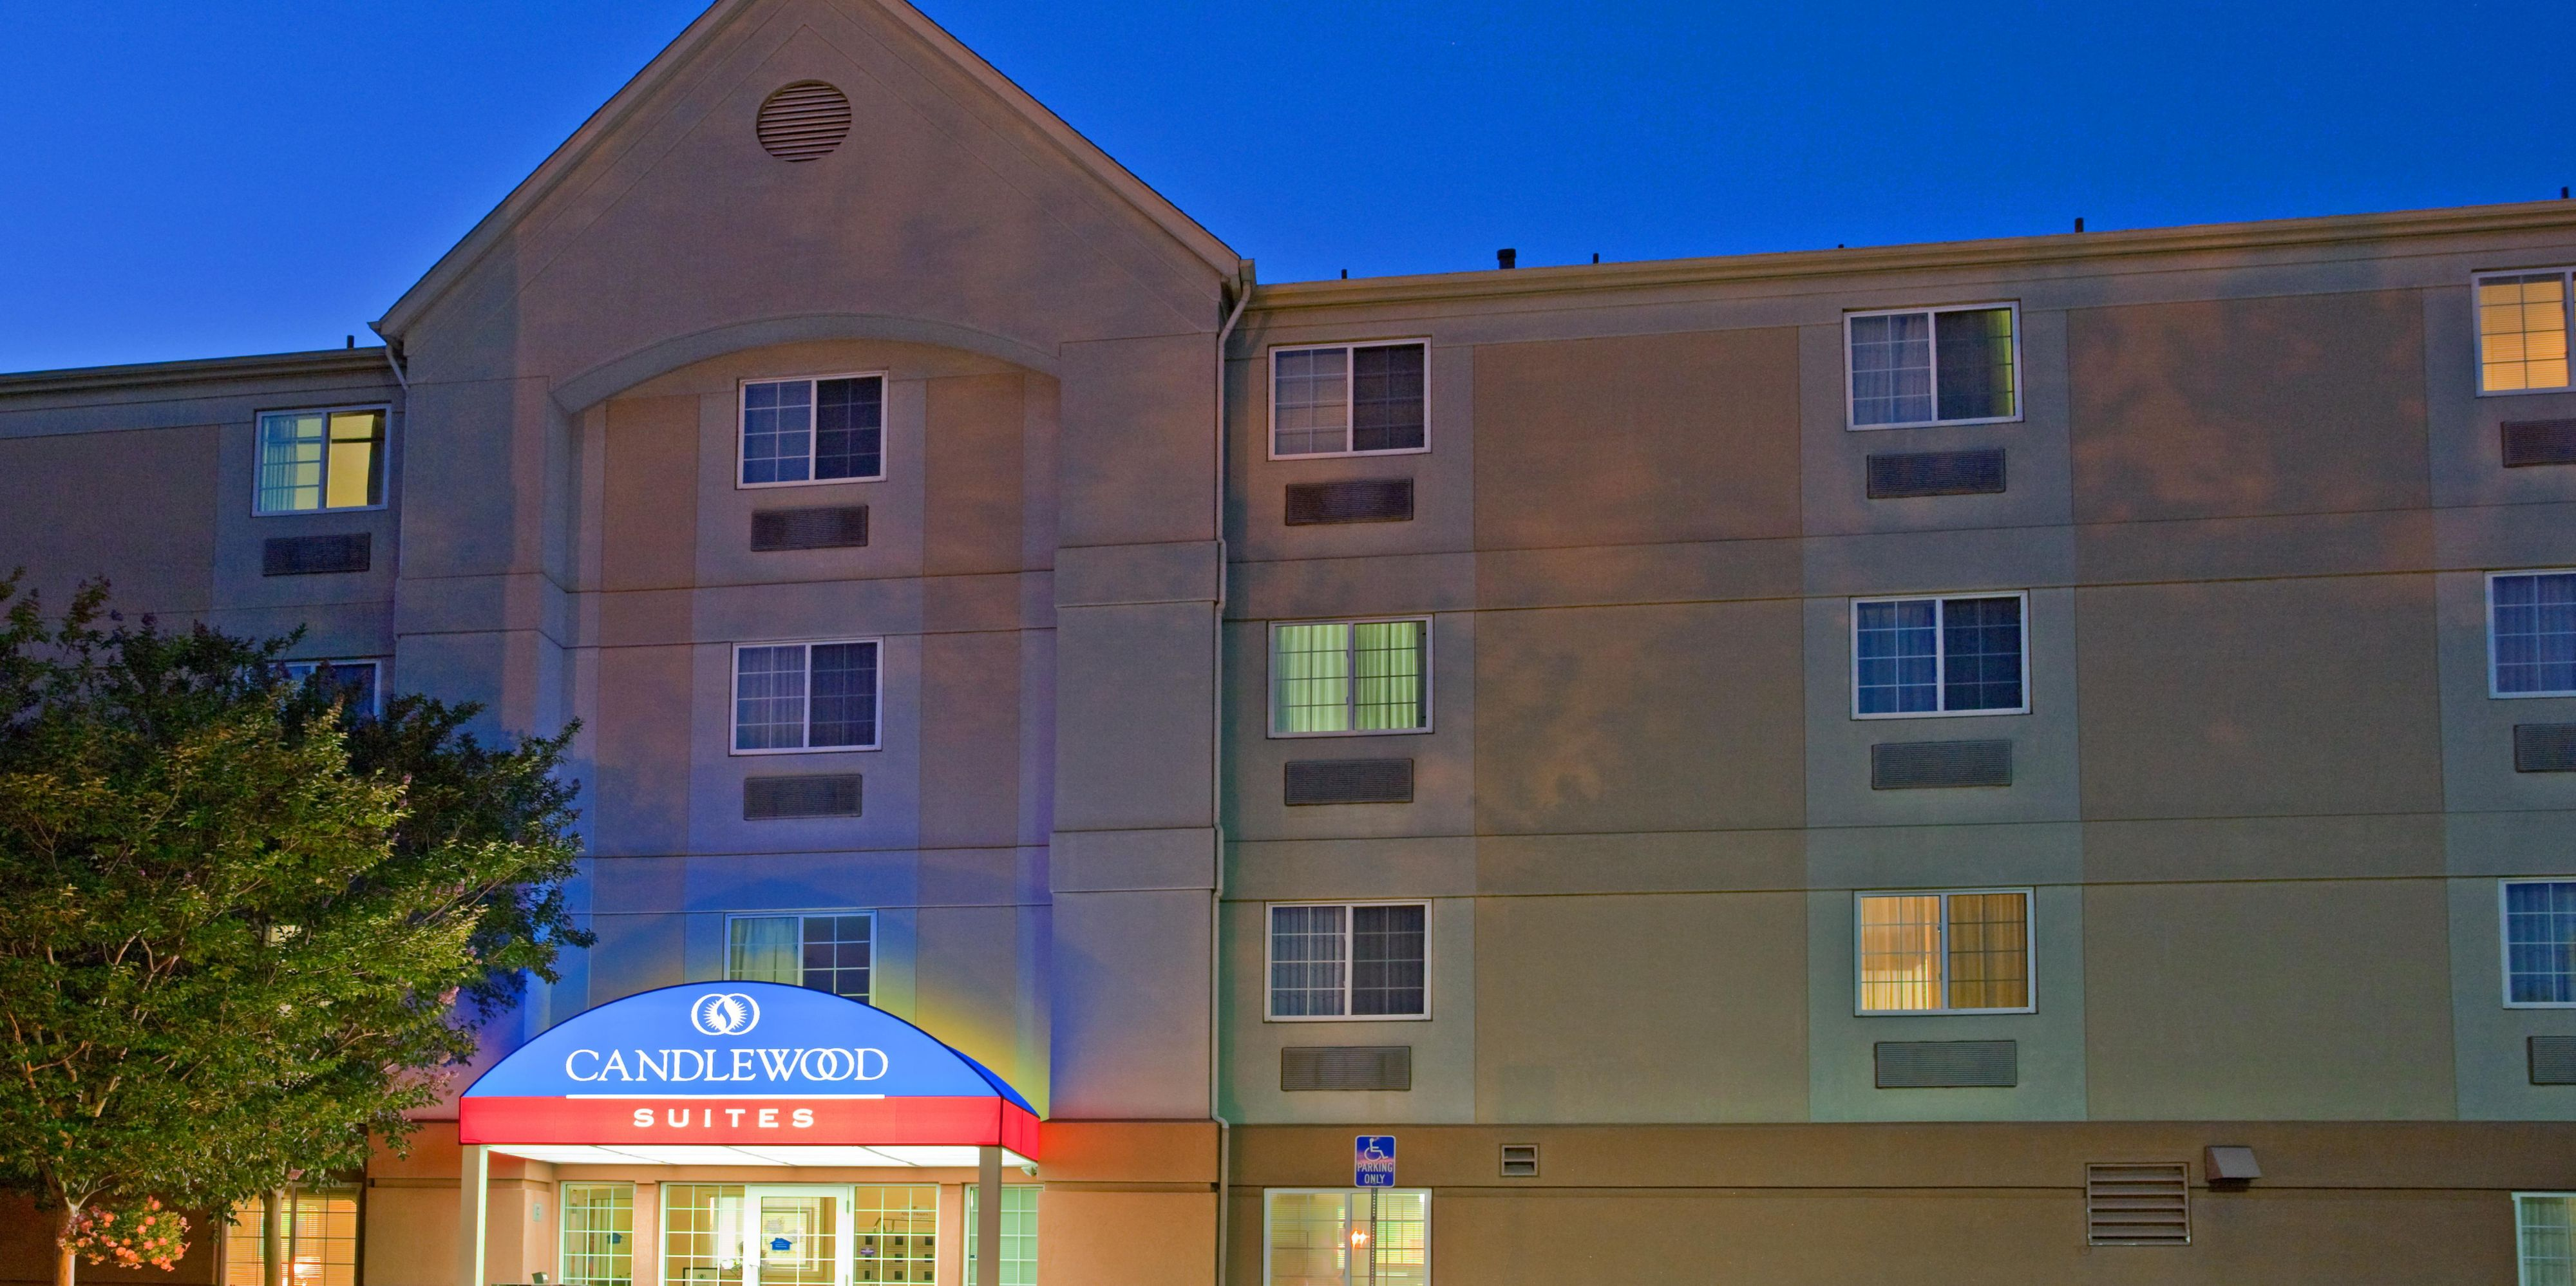 ... The Candlewood Suites Extended Stay Hotel Front Entrance At Dusk ...